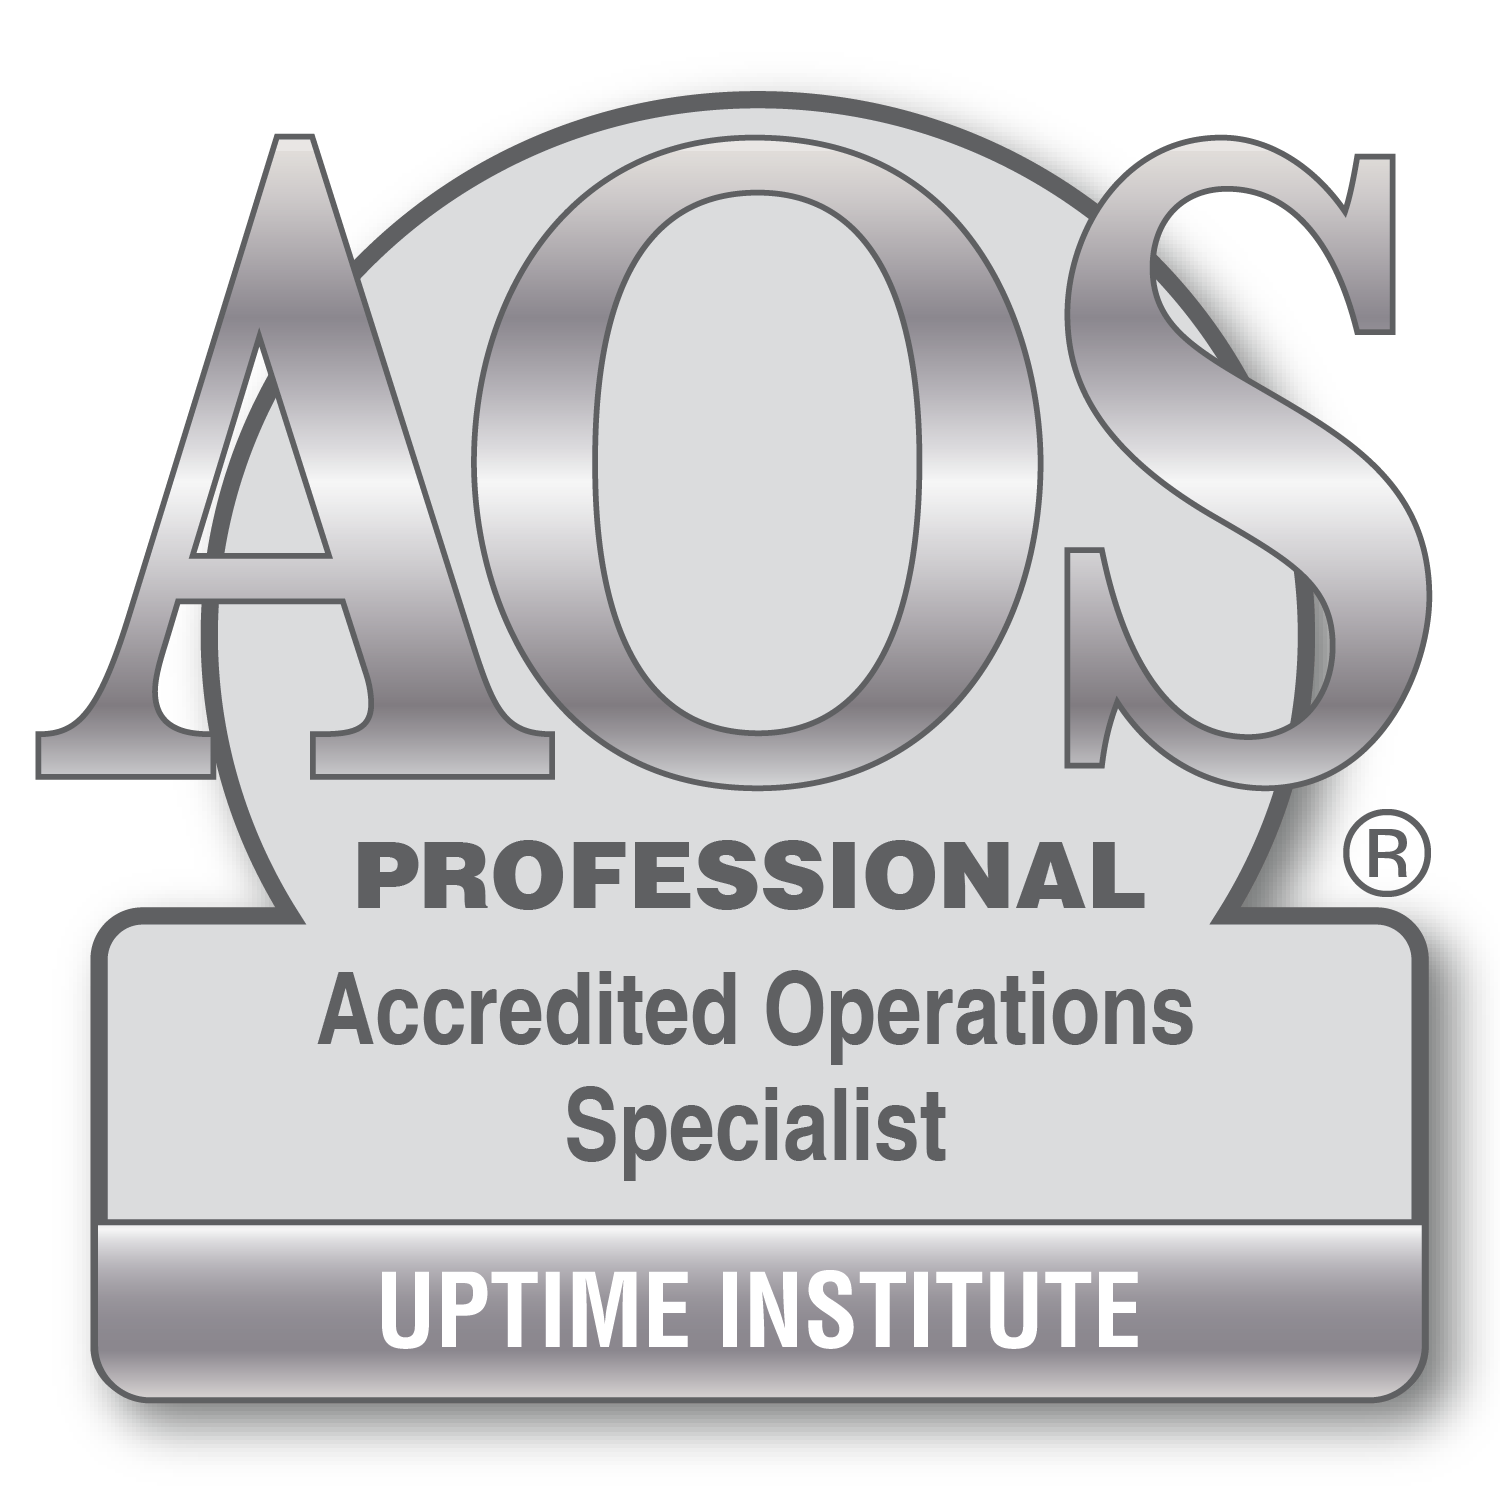 Programa Accredited Operations Specialist - Uptime Institute LLC